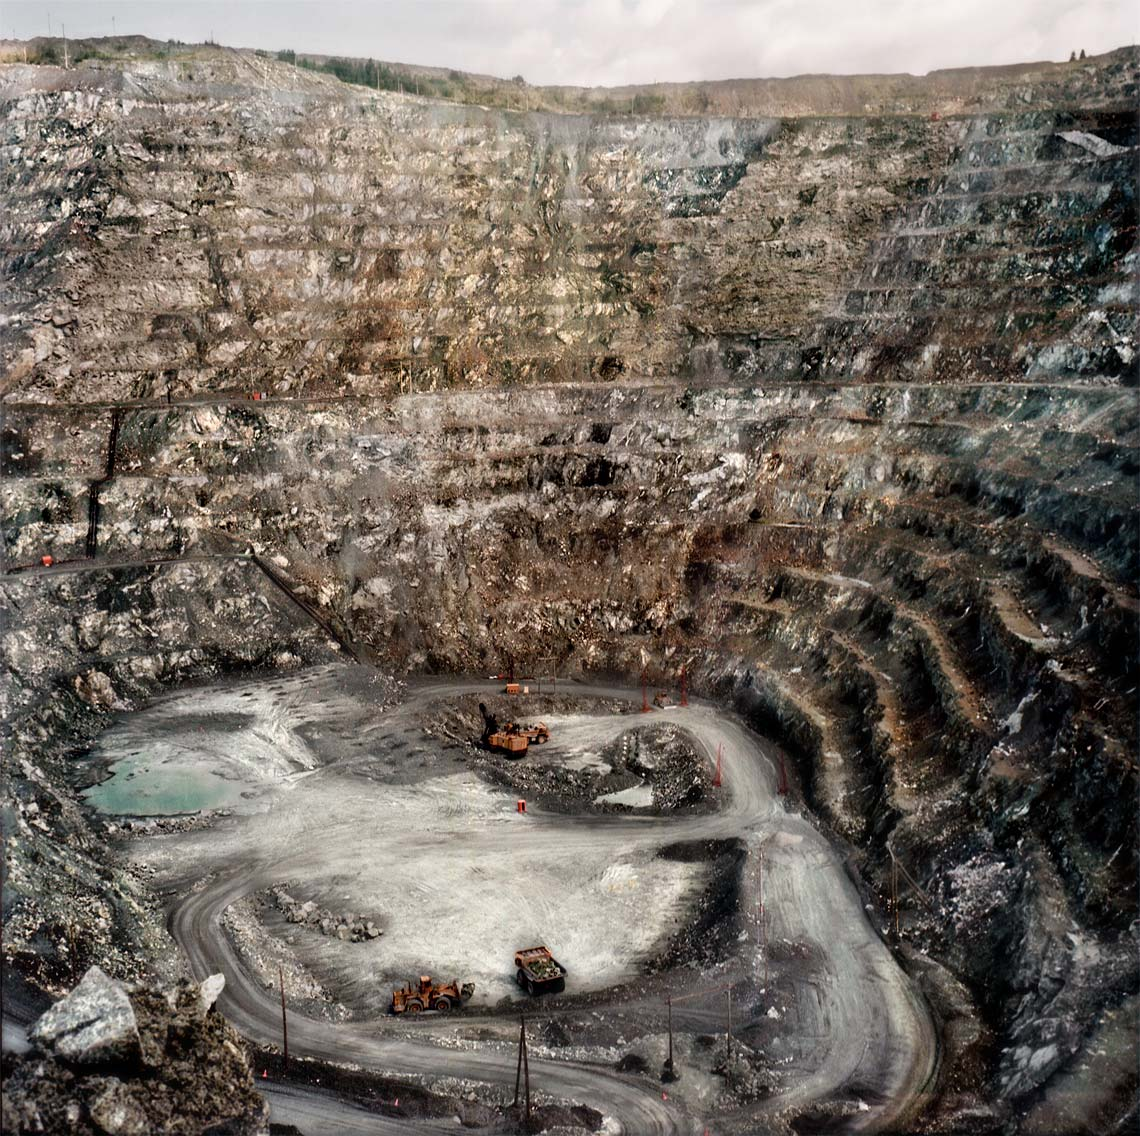 Looking downward into mine pit with high grey sides of scraped rock